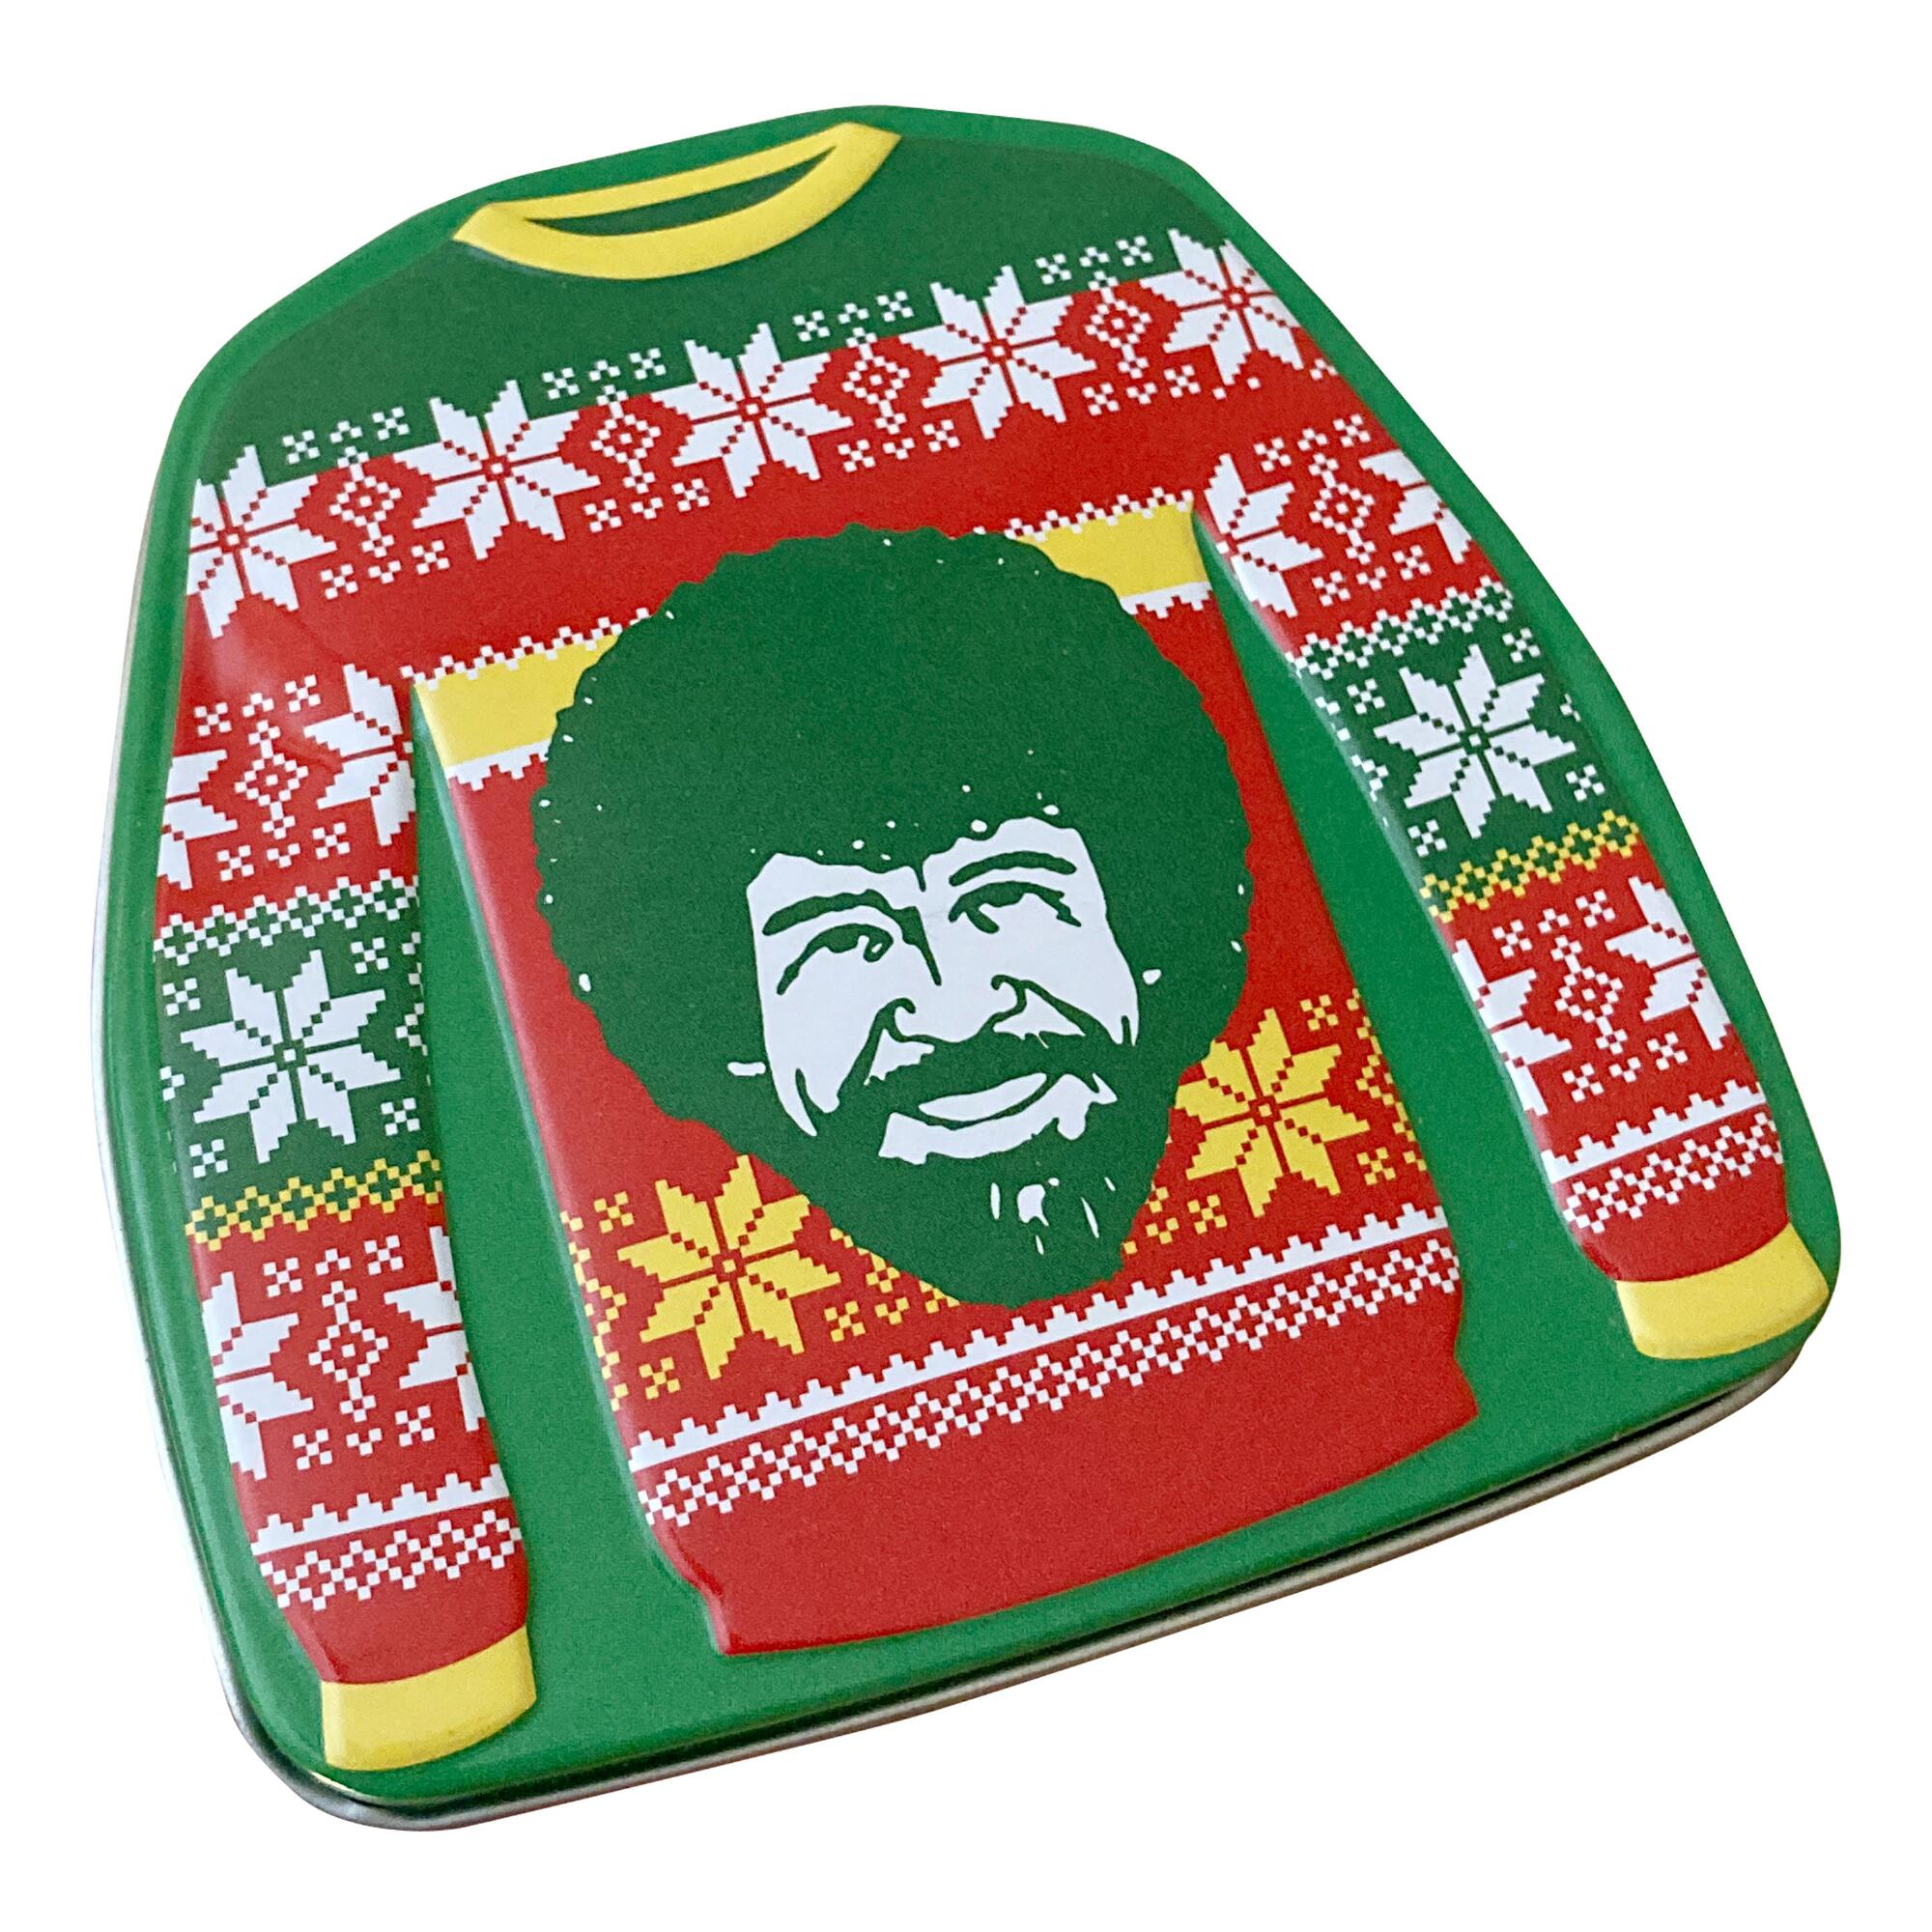 Metal candy tin shaped like a sweater with Bob Ross on it